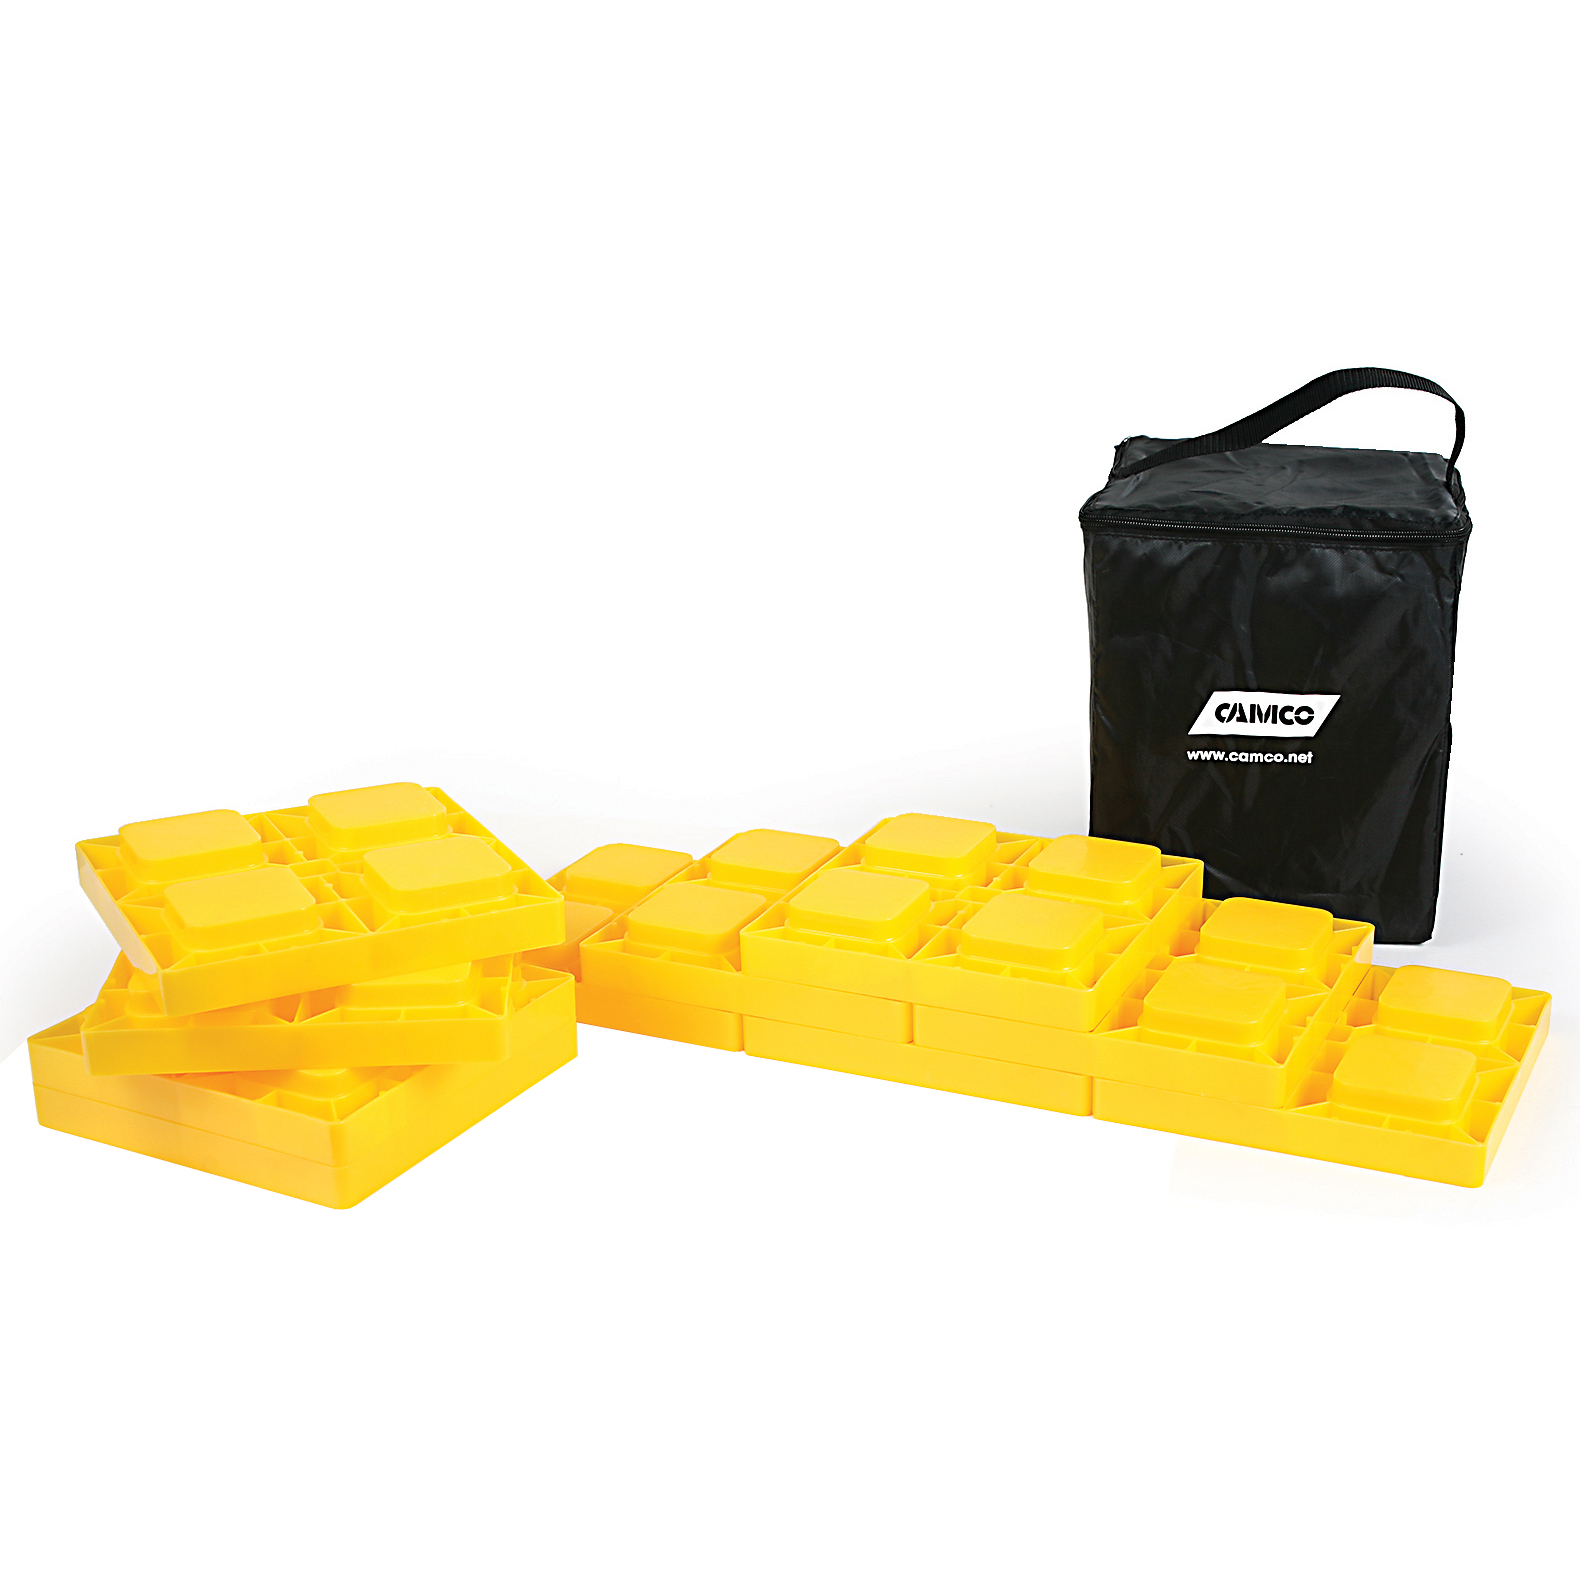 Camco Heavy Duty Leveling Blocks, Ideal Leveling Single Dual Wheels, Hydraulic Jacks, Tongue Jacks Tandem Axles (10 pack) (44505)